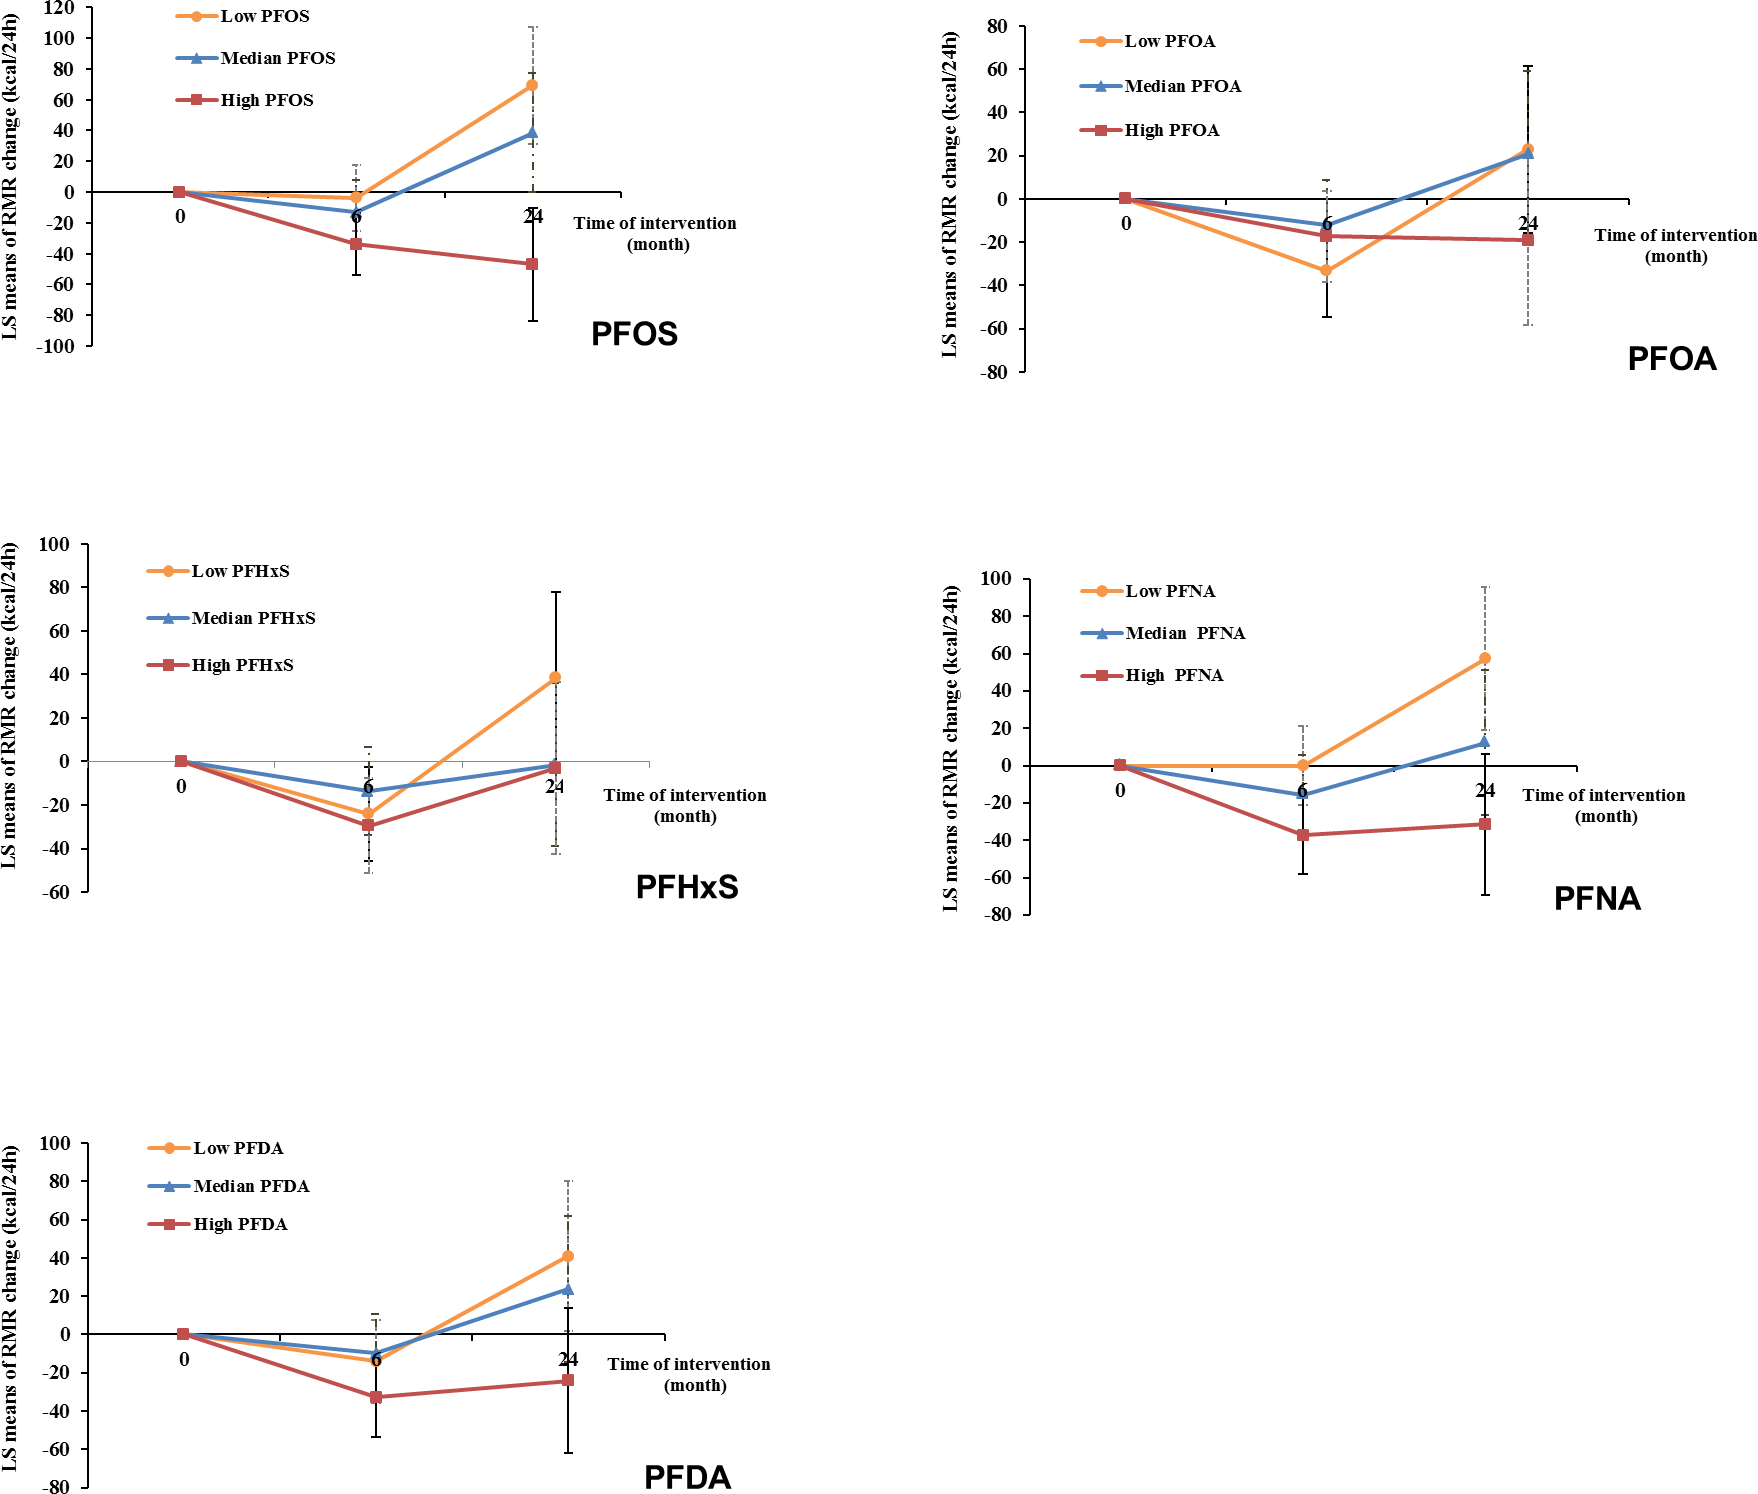 Trajectory of changes in RMR of all participants according to tertiles of PFAS concentrations.